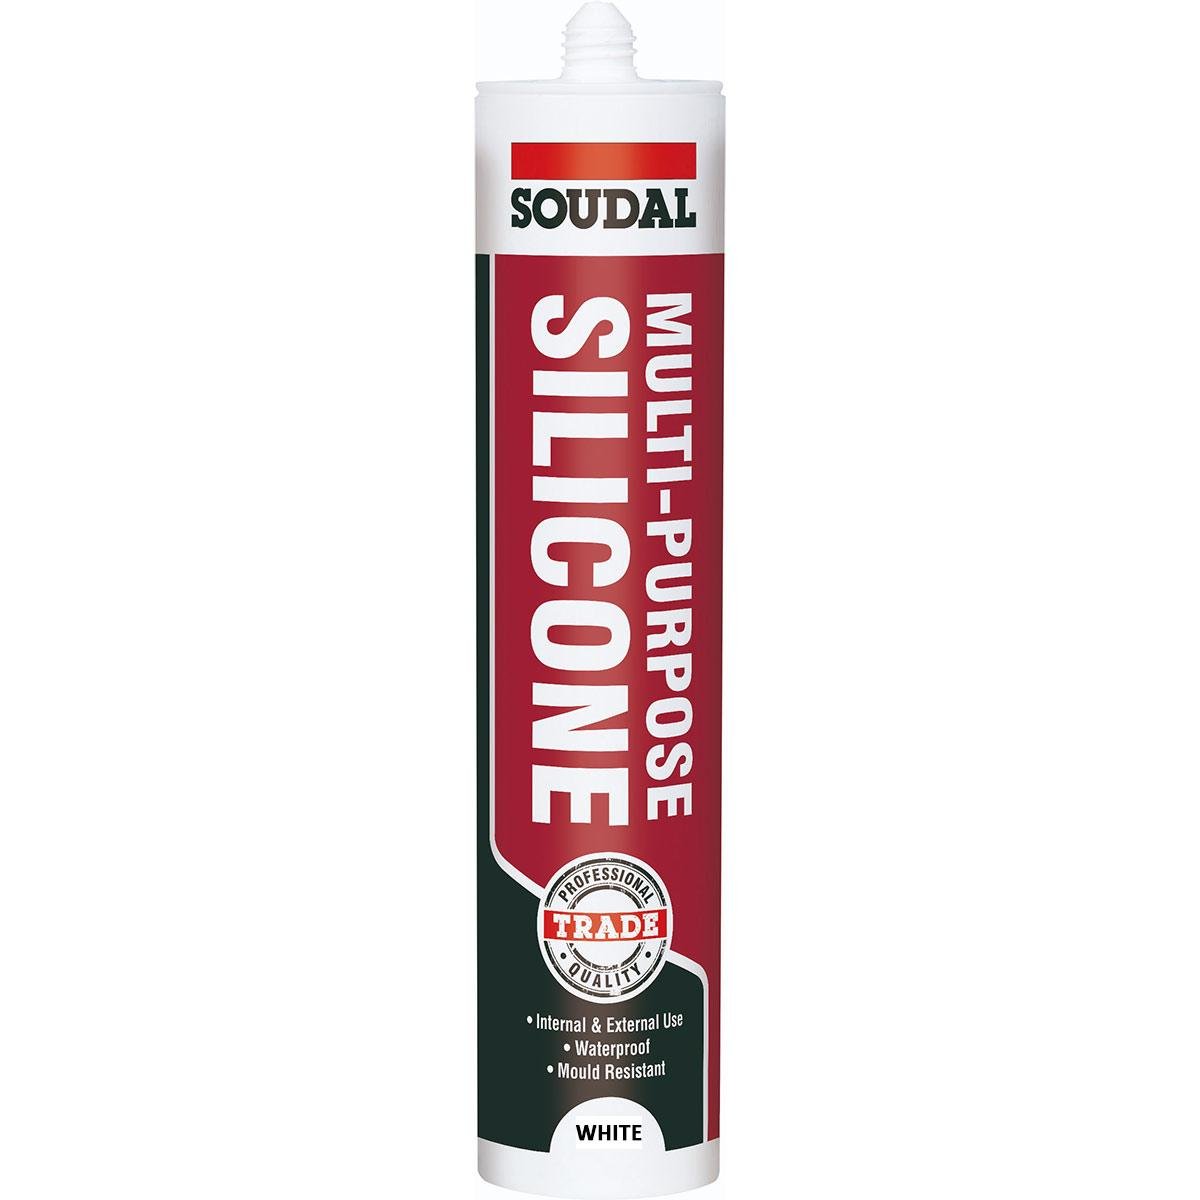 Sealants Glues & Fluids